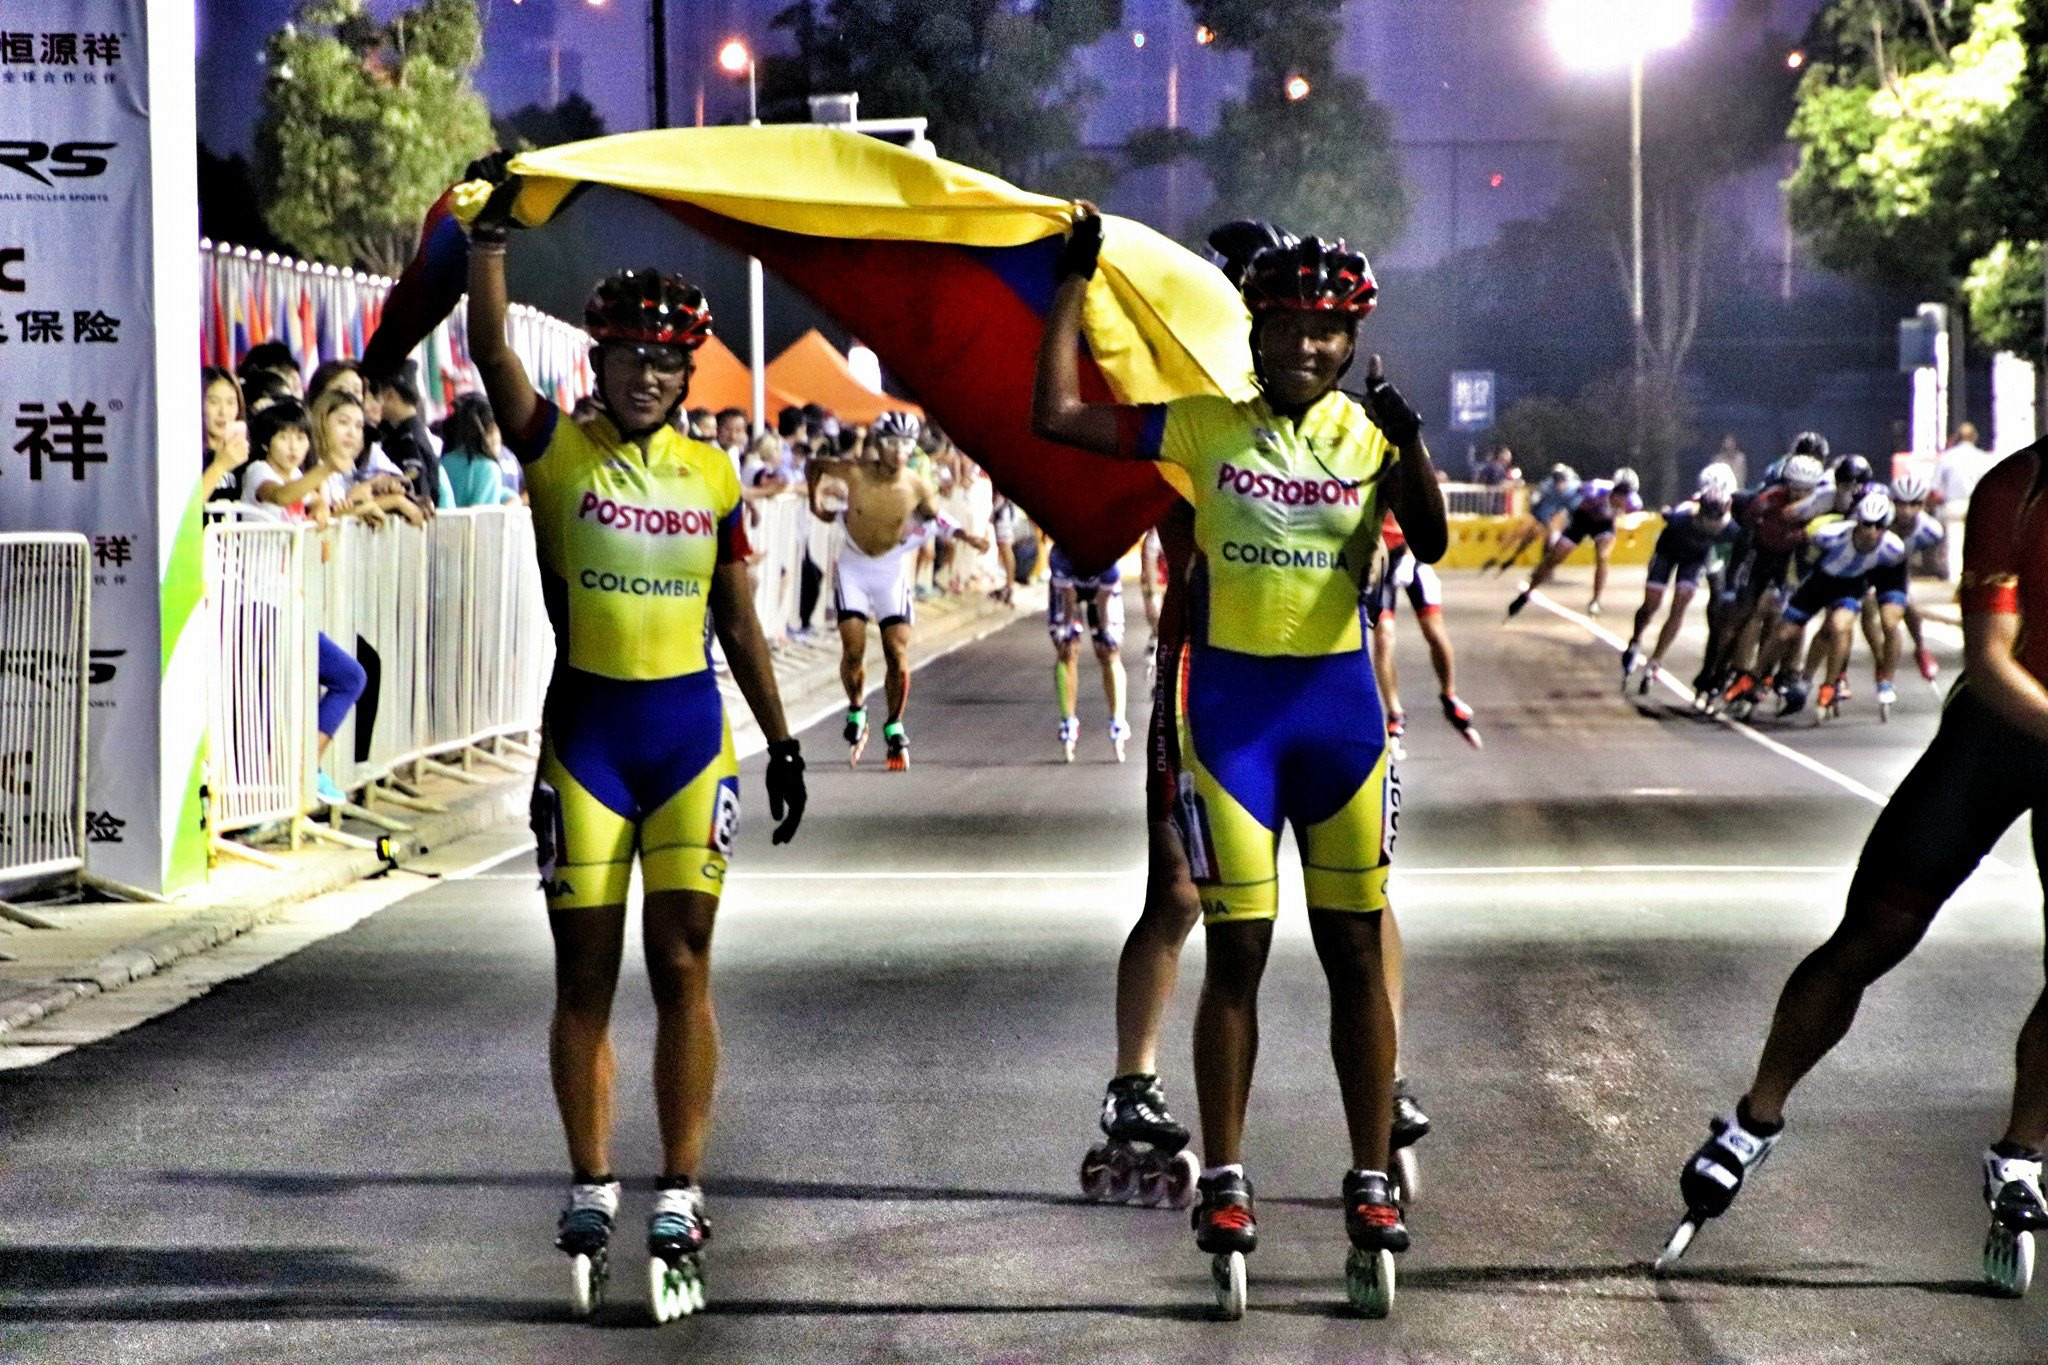 Colombia earned double speed skating gold ©World Skate